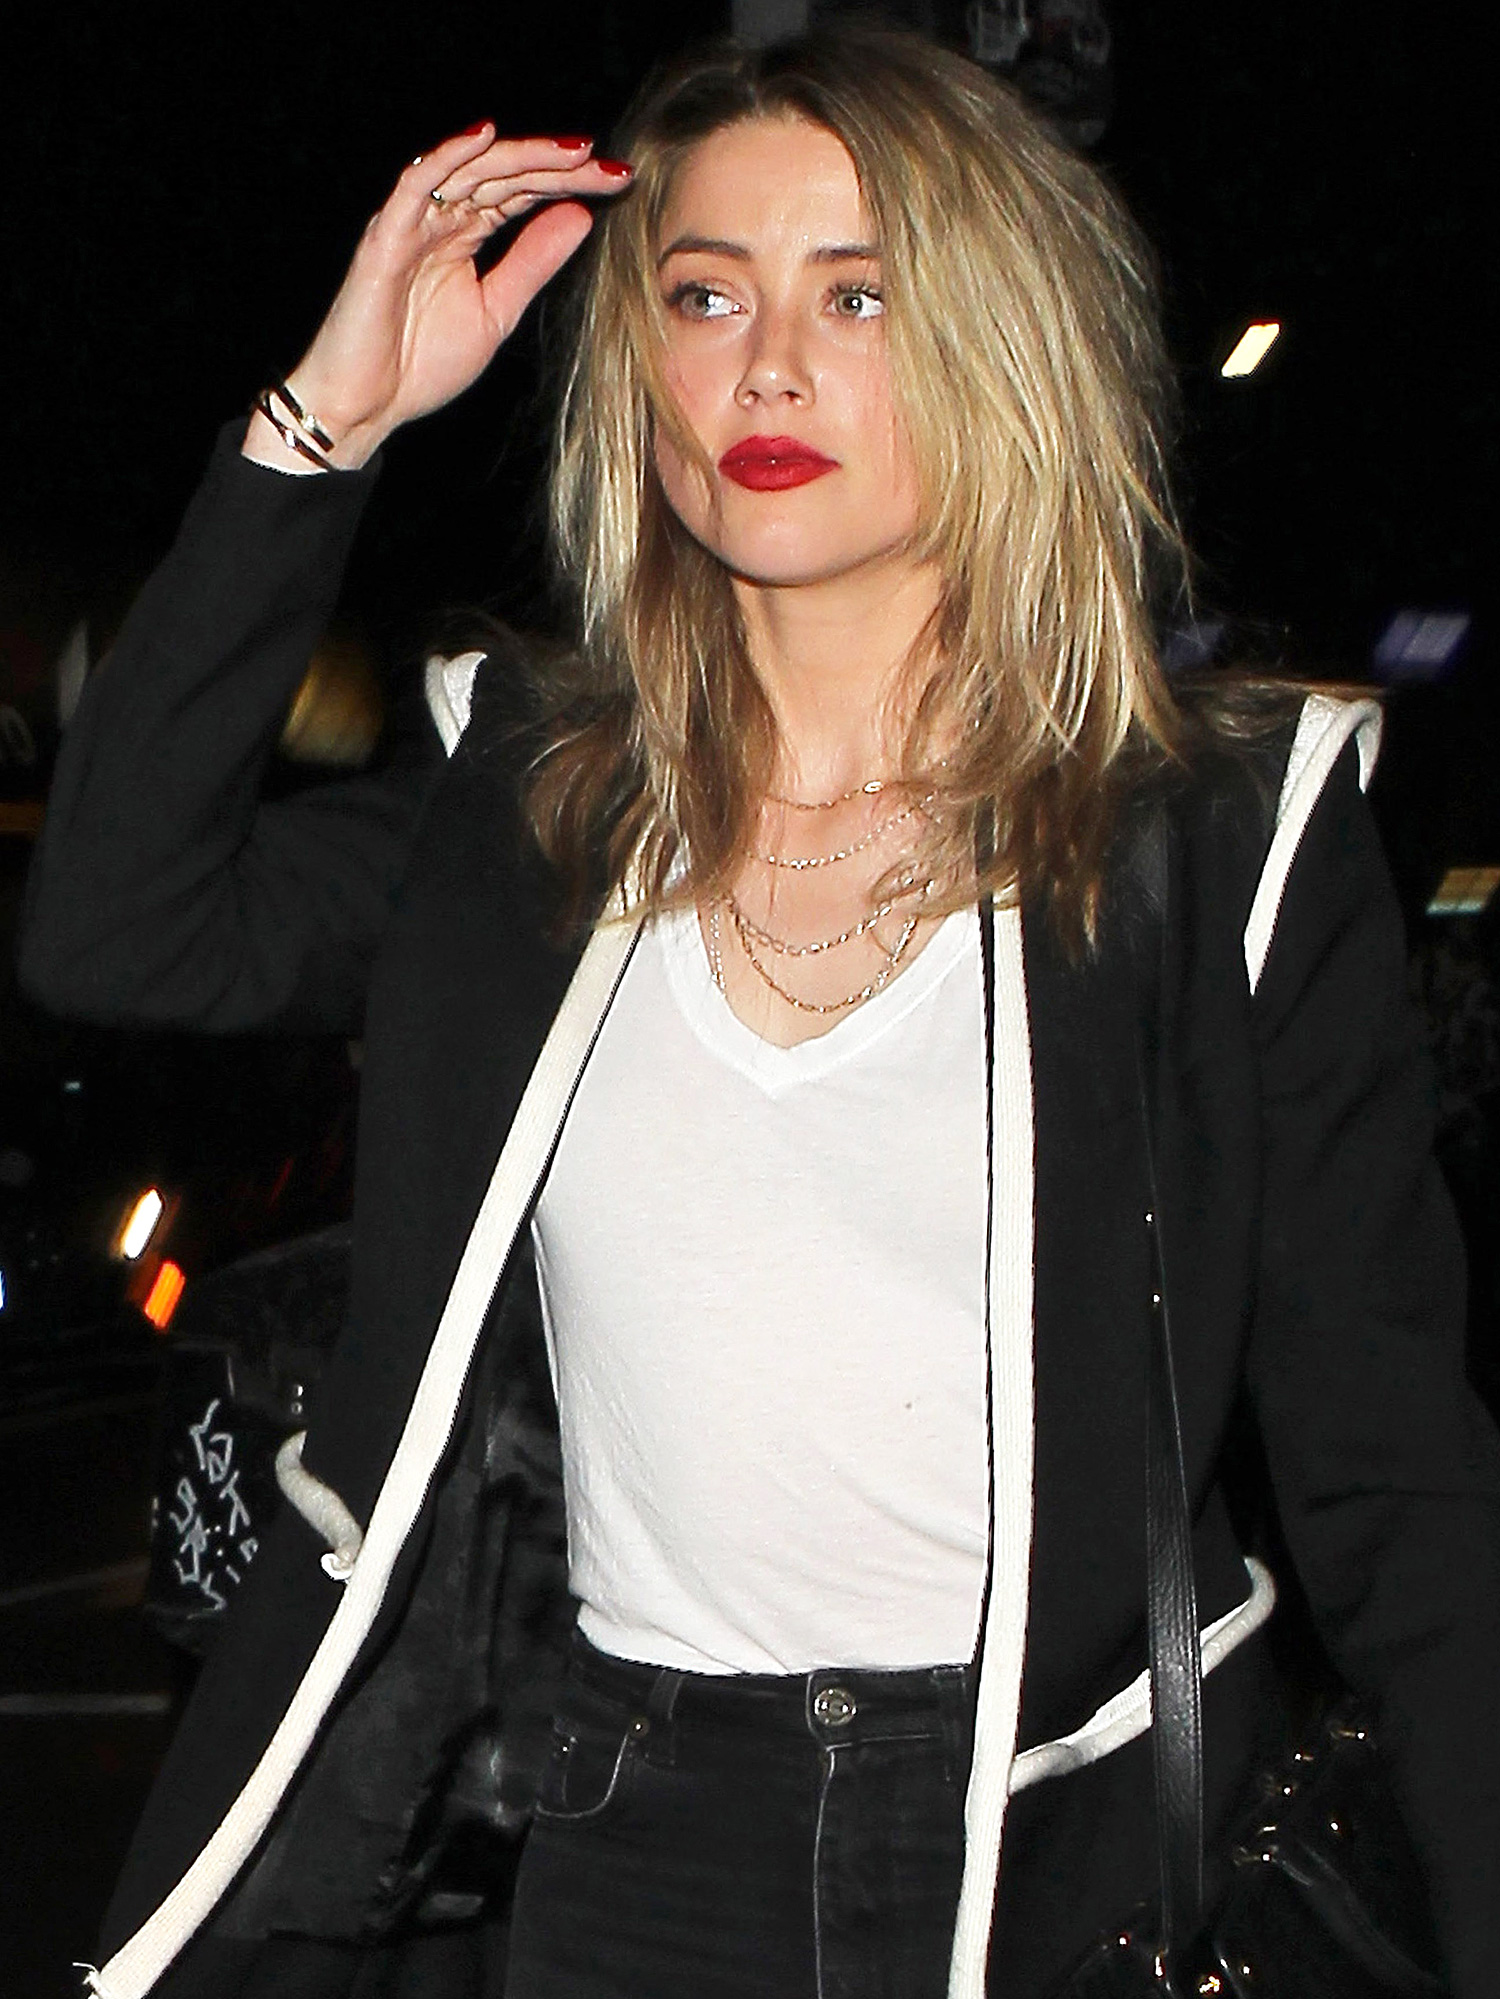 Amber Heard meets up with a Mystery Man at No Name Club